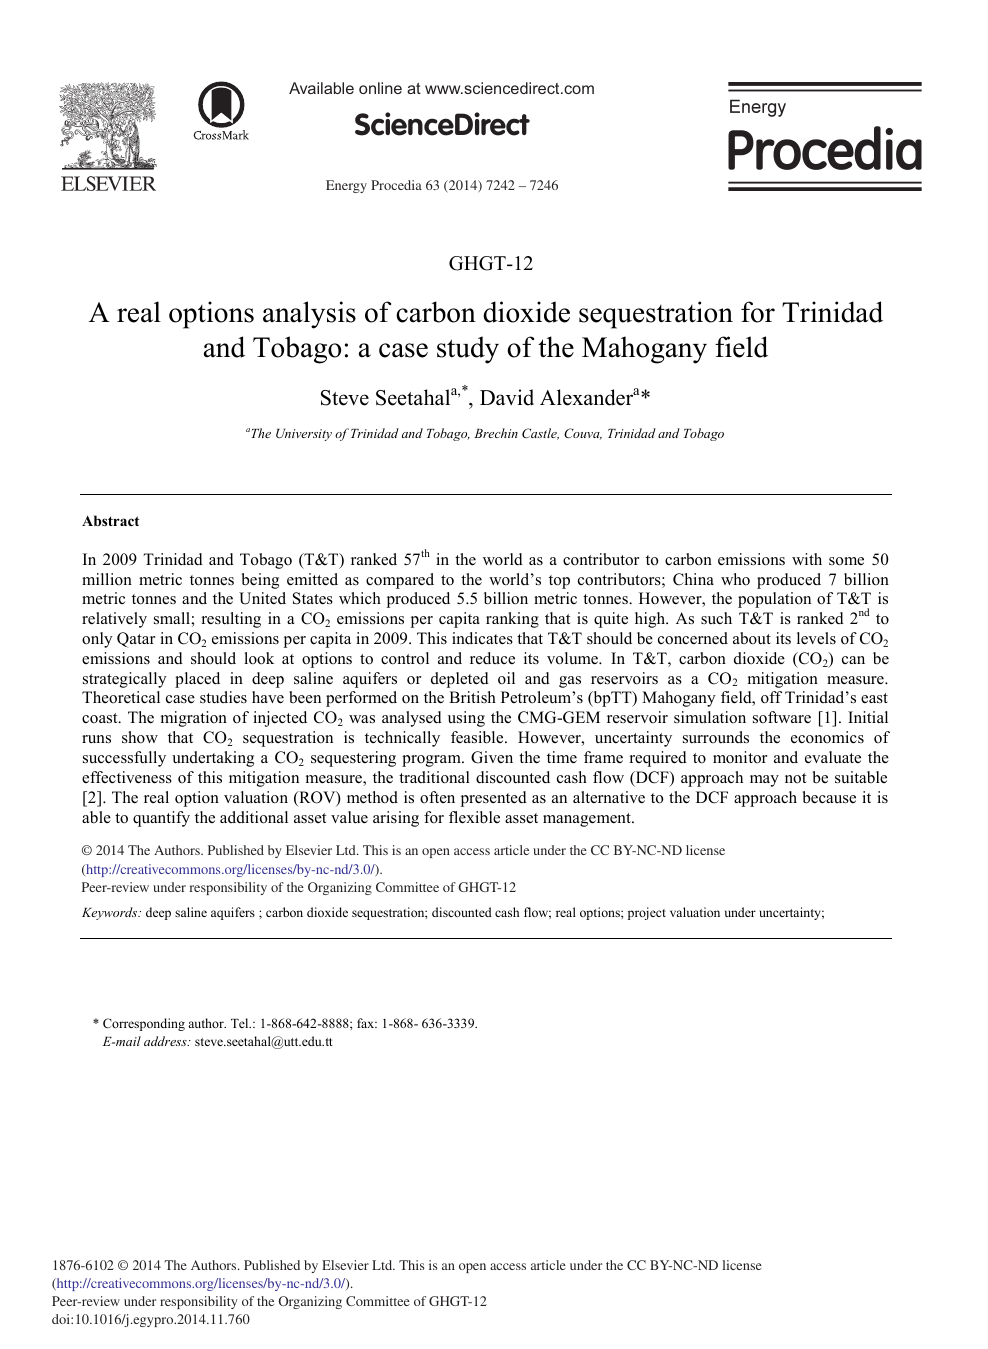 A Real Options Analysis of Carbon Dioxide Sequestration for Trinidad